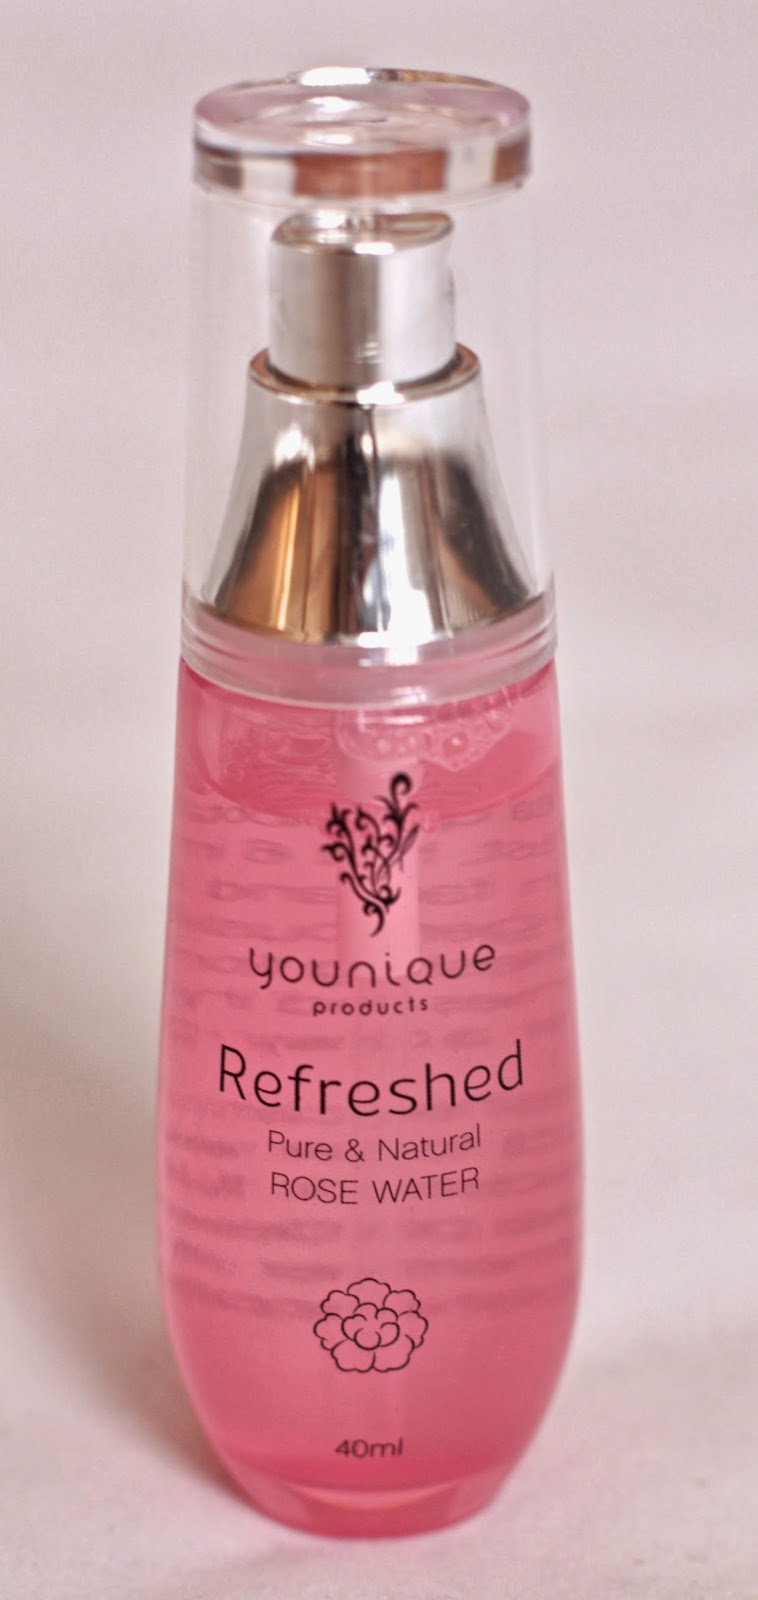 Younique Refreshed Pure & Natural Rose Water